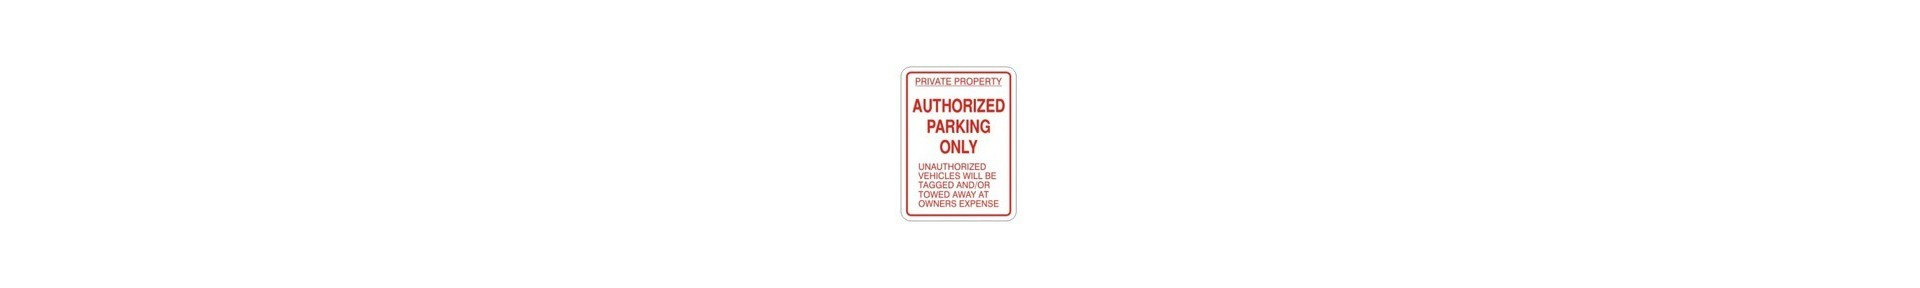 Authorized parking signs